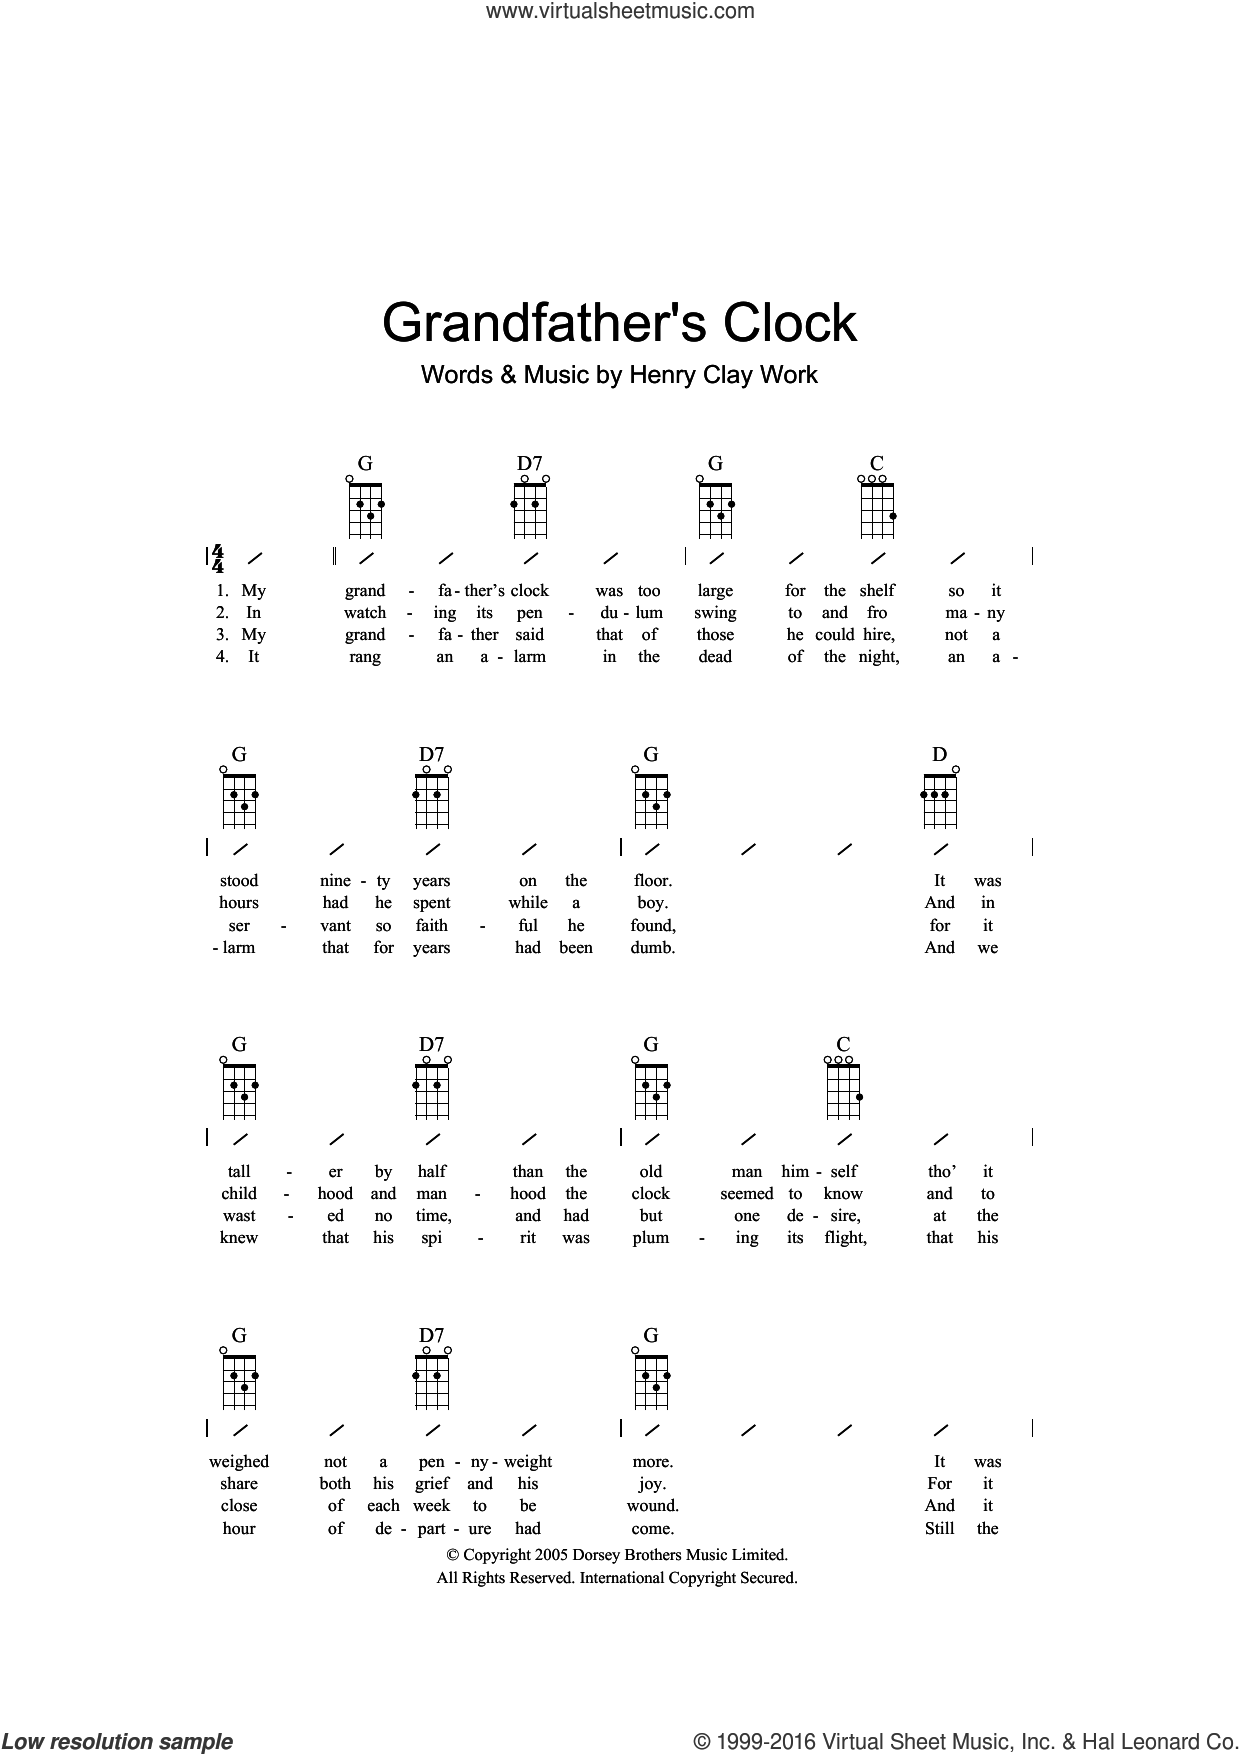 Grandfather's Clock sheet music for ukulele (chords) by Henry Clay Work, intermediate skill level